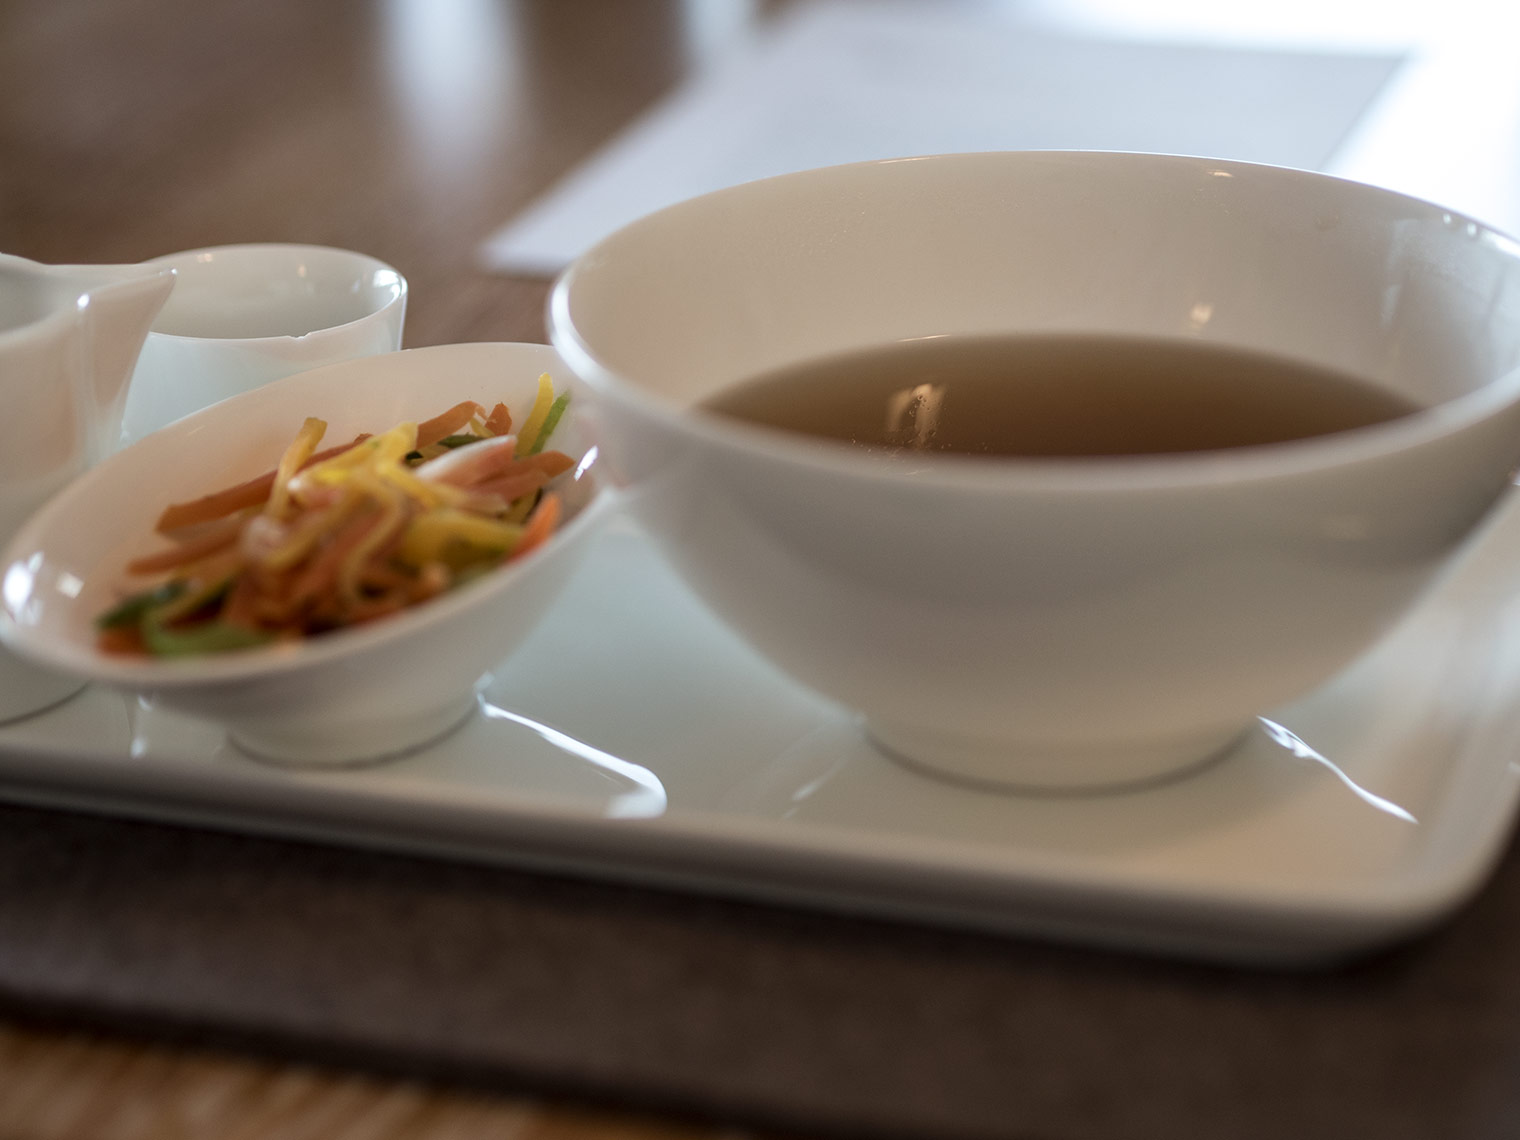 Vegetable broth at FX Mayr clinic in Austria. Review by Chic Journal